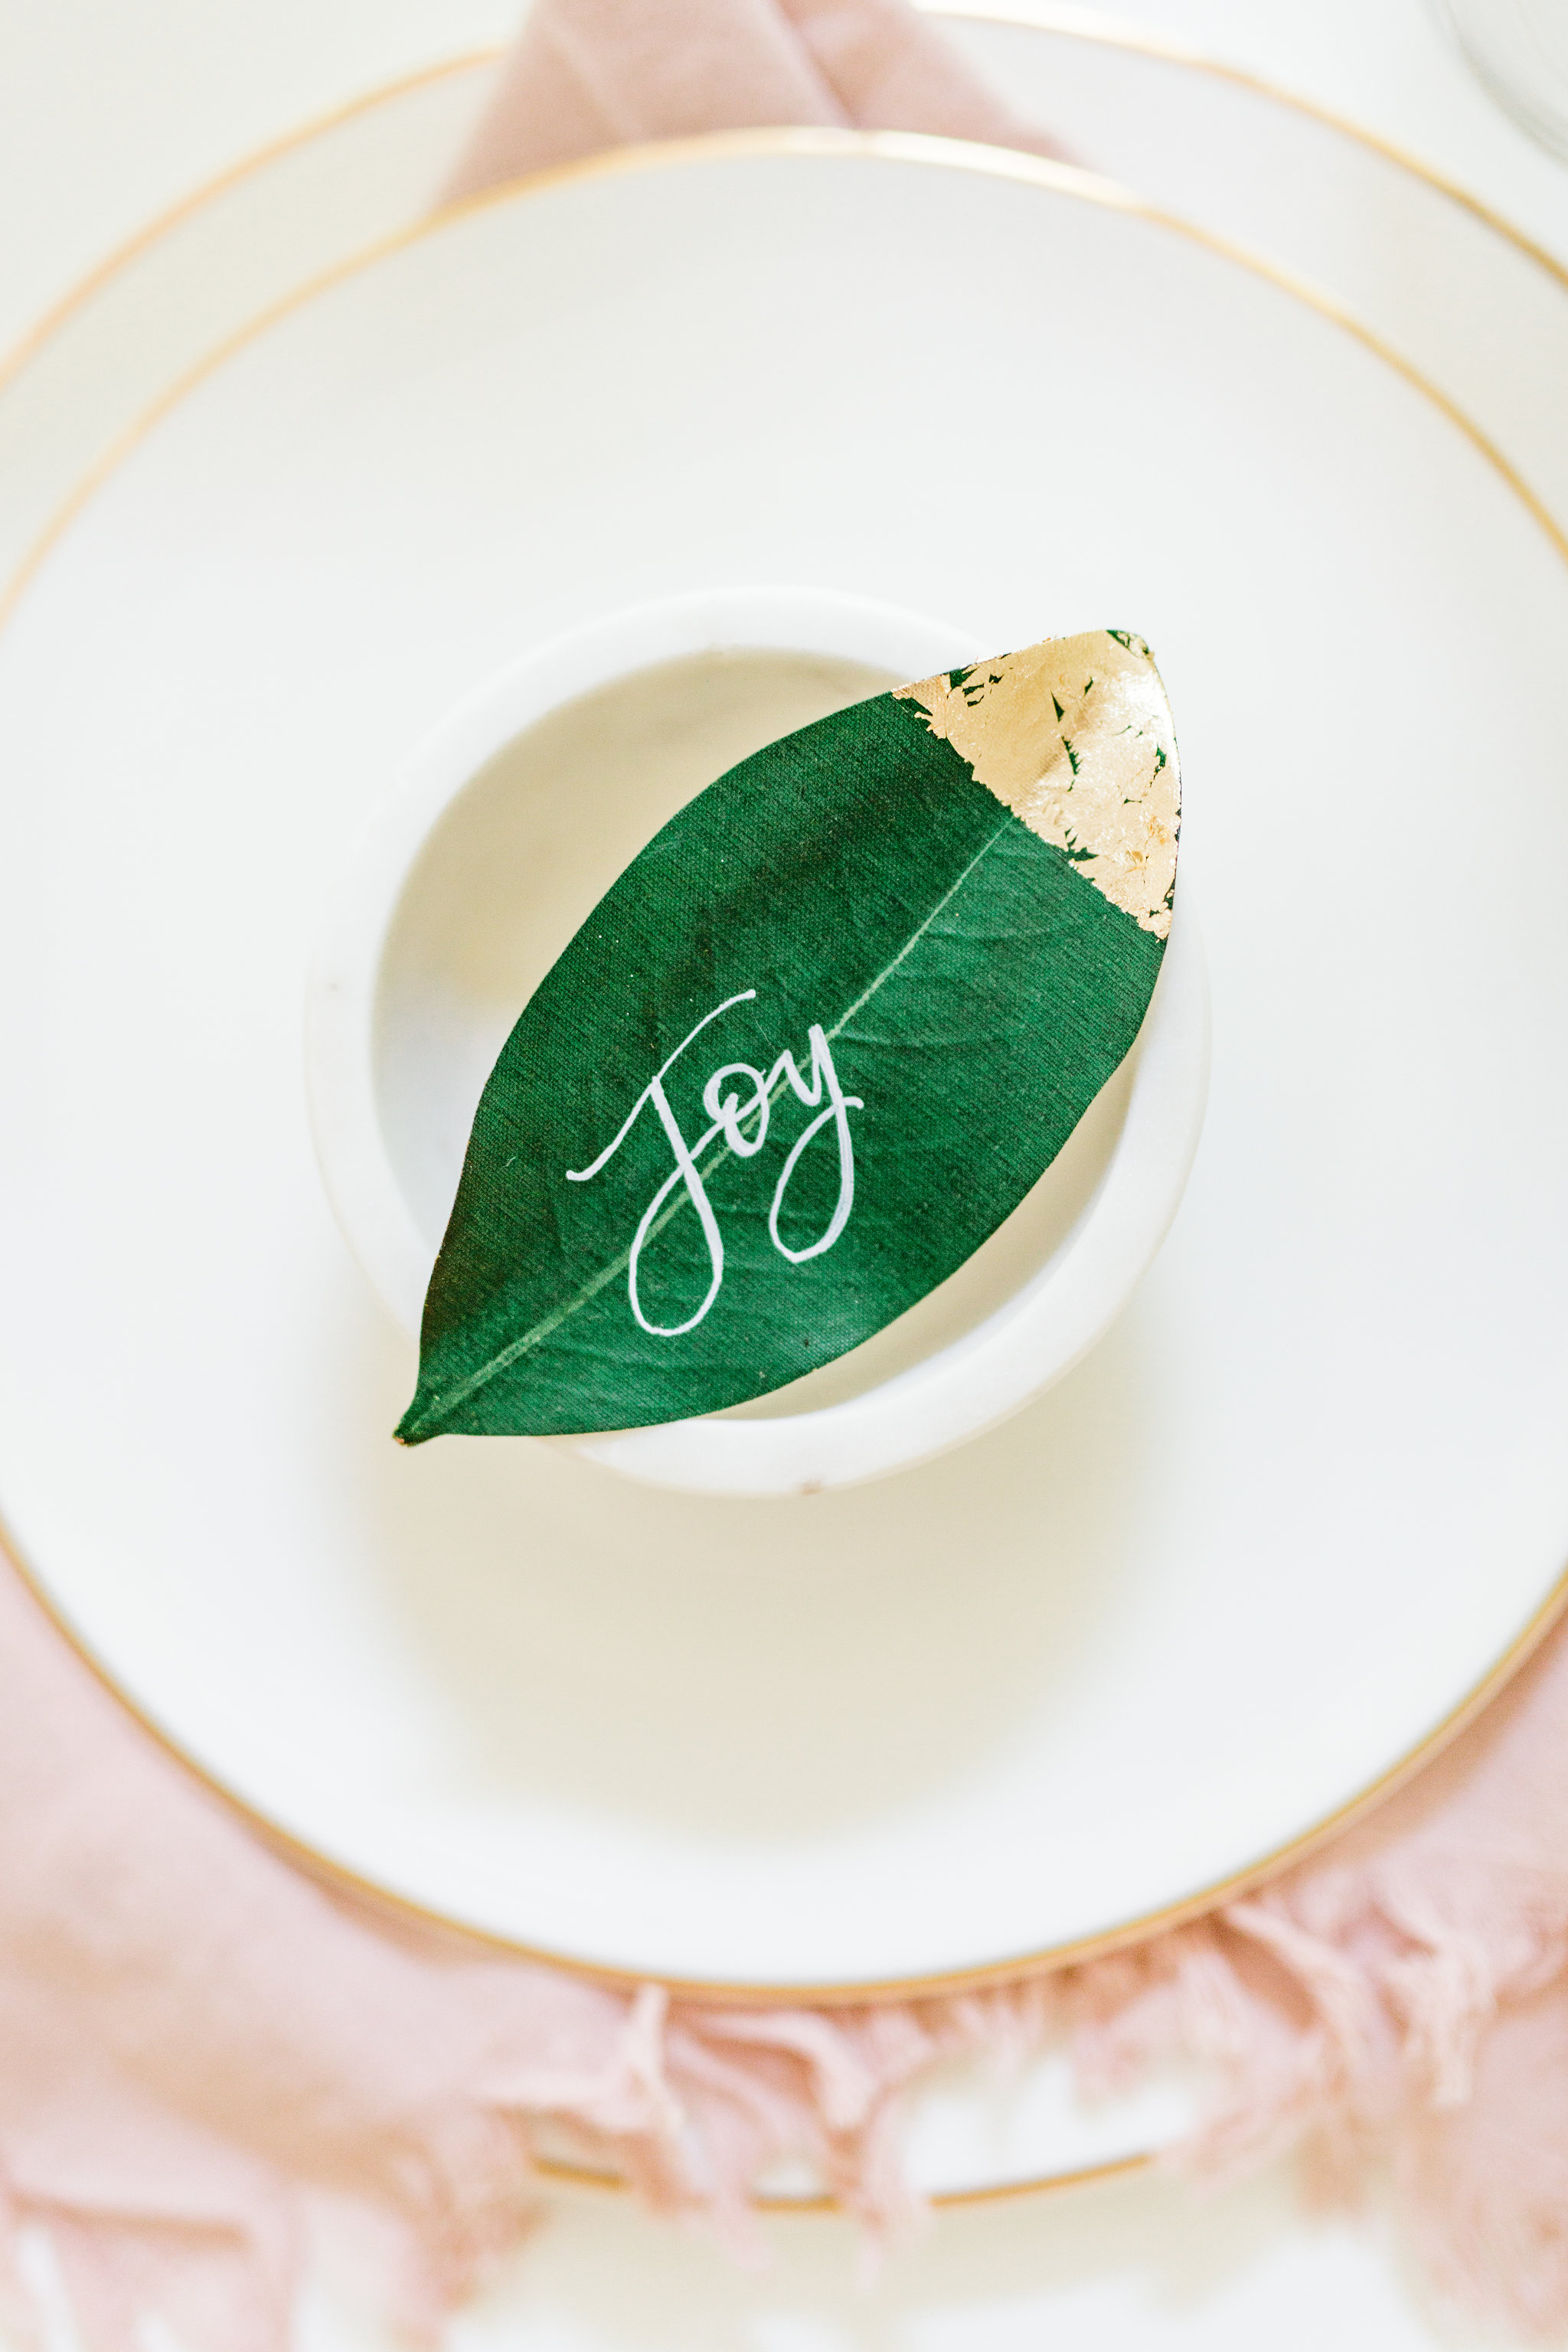 Olivia and Oliver Gold, Blush and Greenry Plants Gilded Garden Styled Bridal Shower Brunch with Bed Bath Beyond magnolia place setting chalk calligraphy Joyfullygreen.jpg